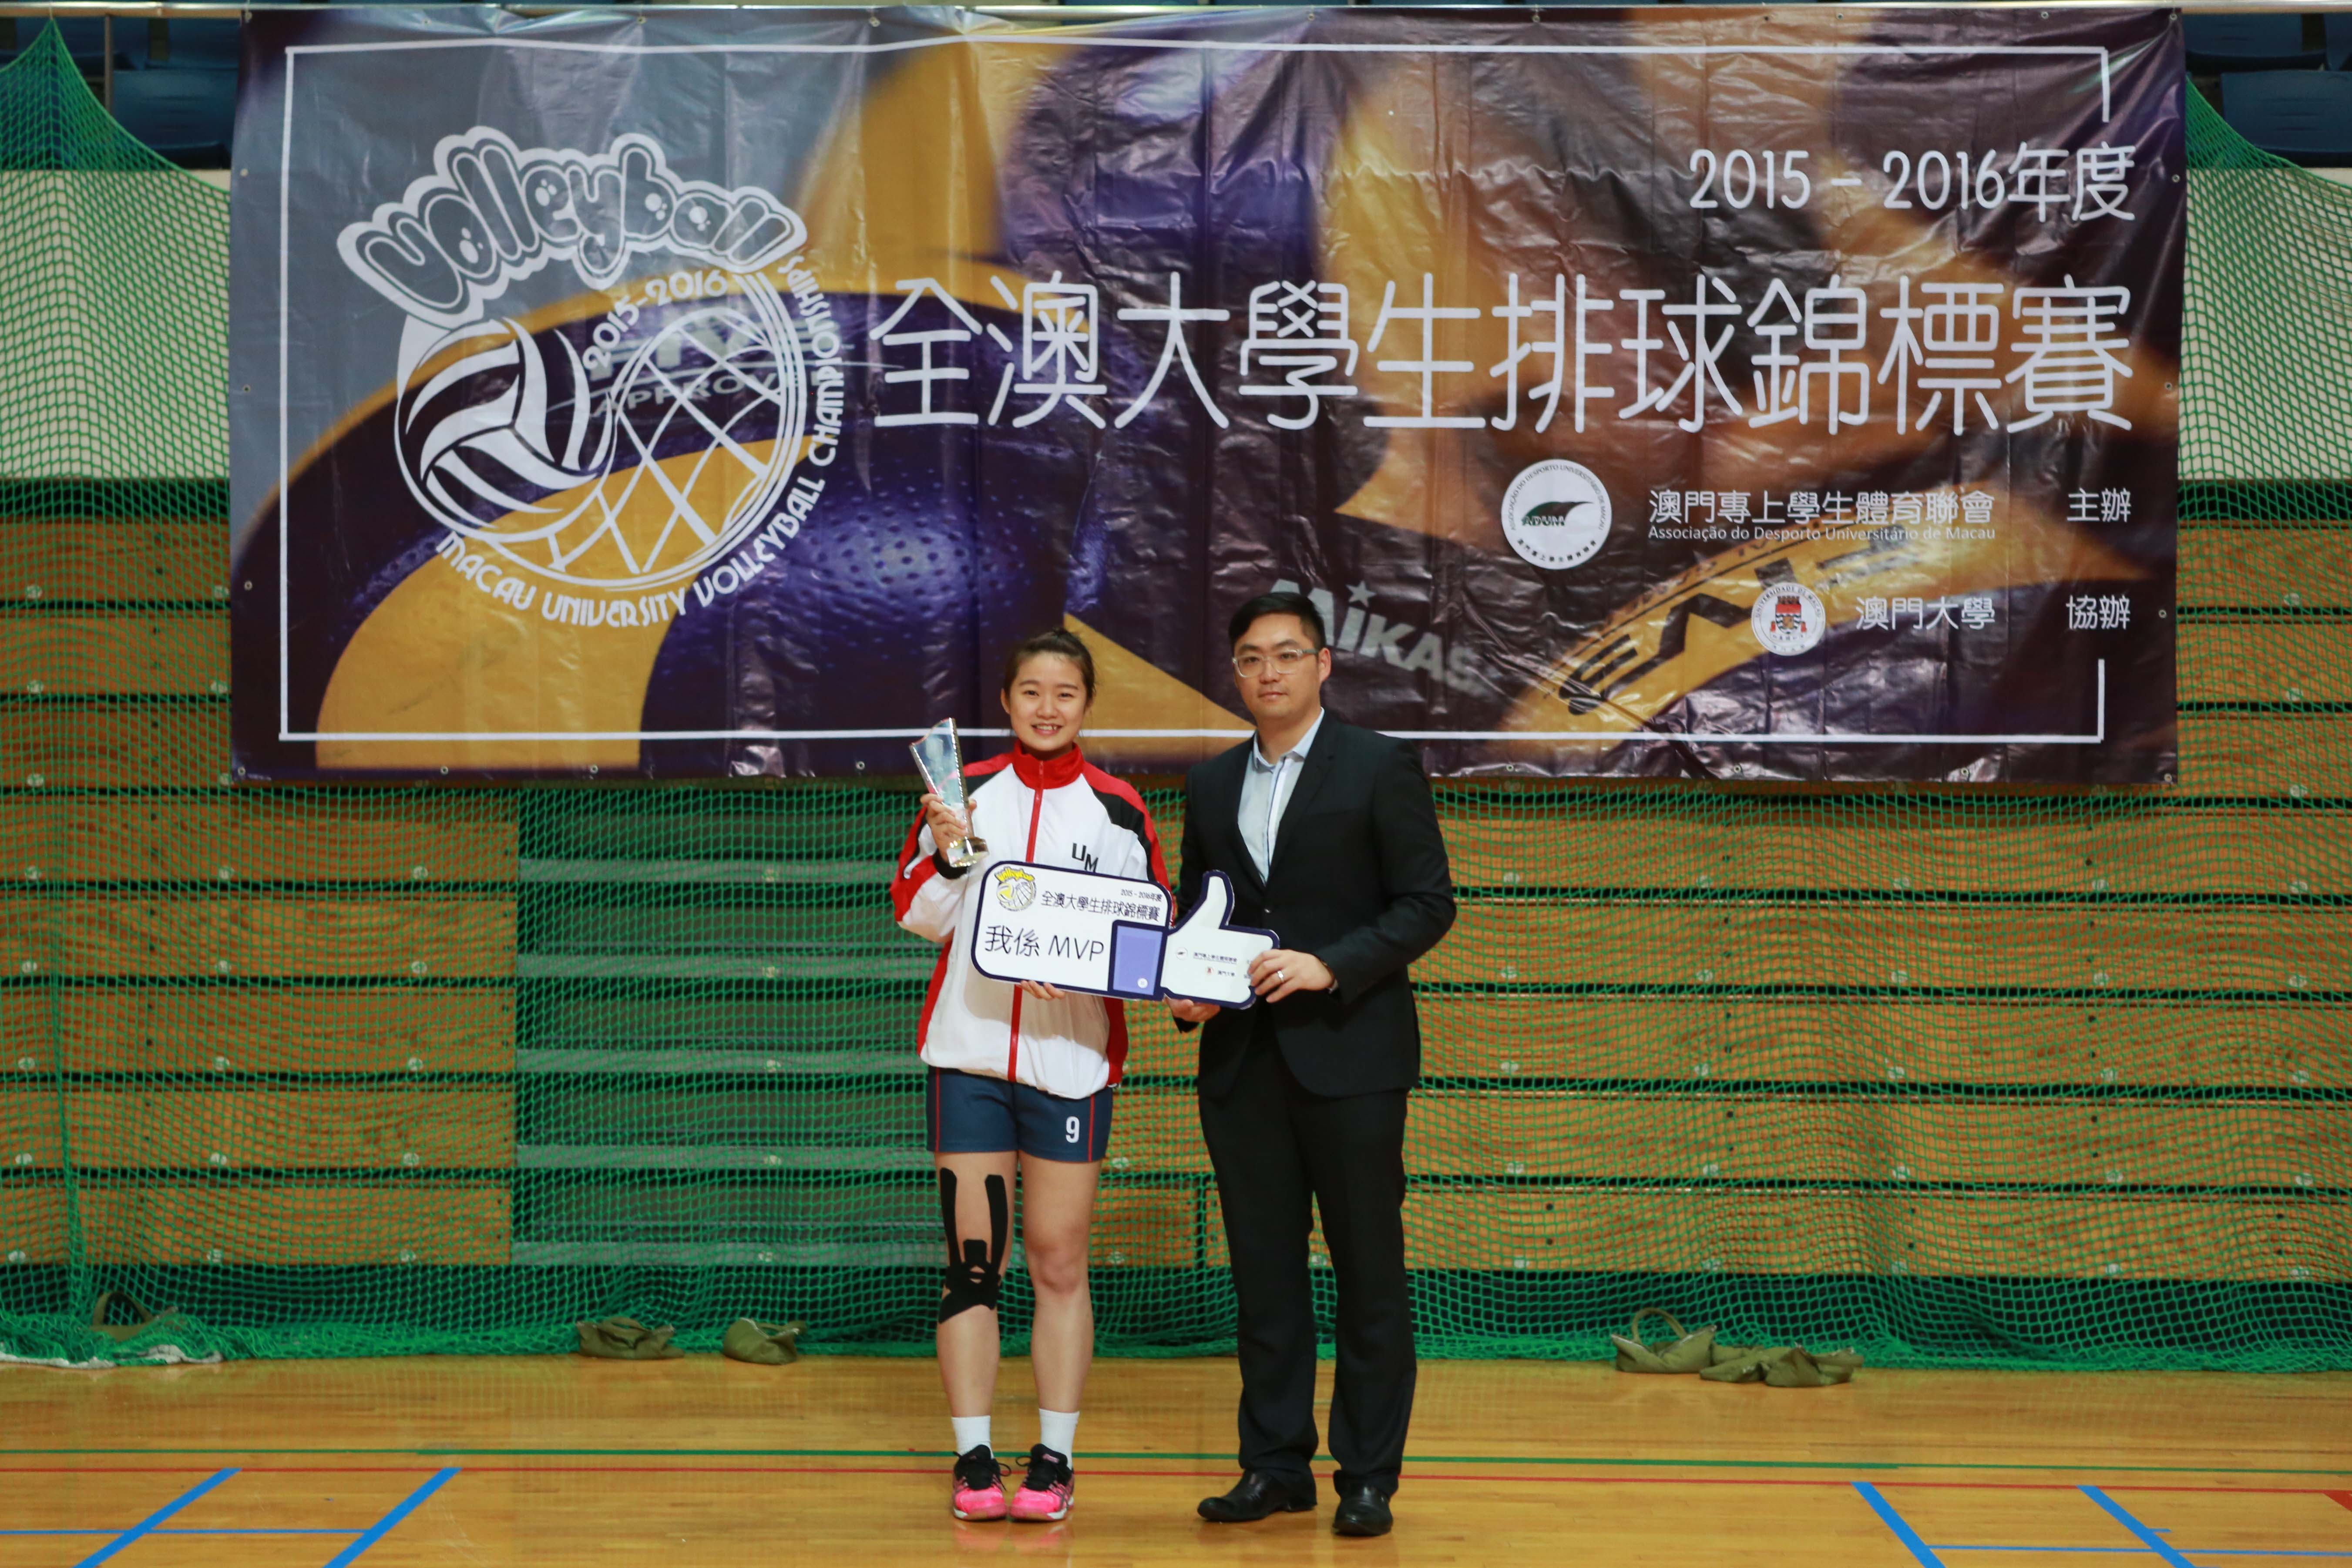 A member of UM's Women's Volleyball Team receives the Most Valuable Female Player Award